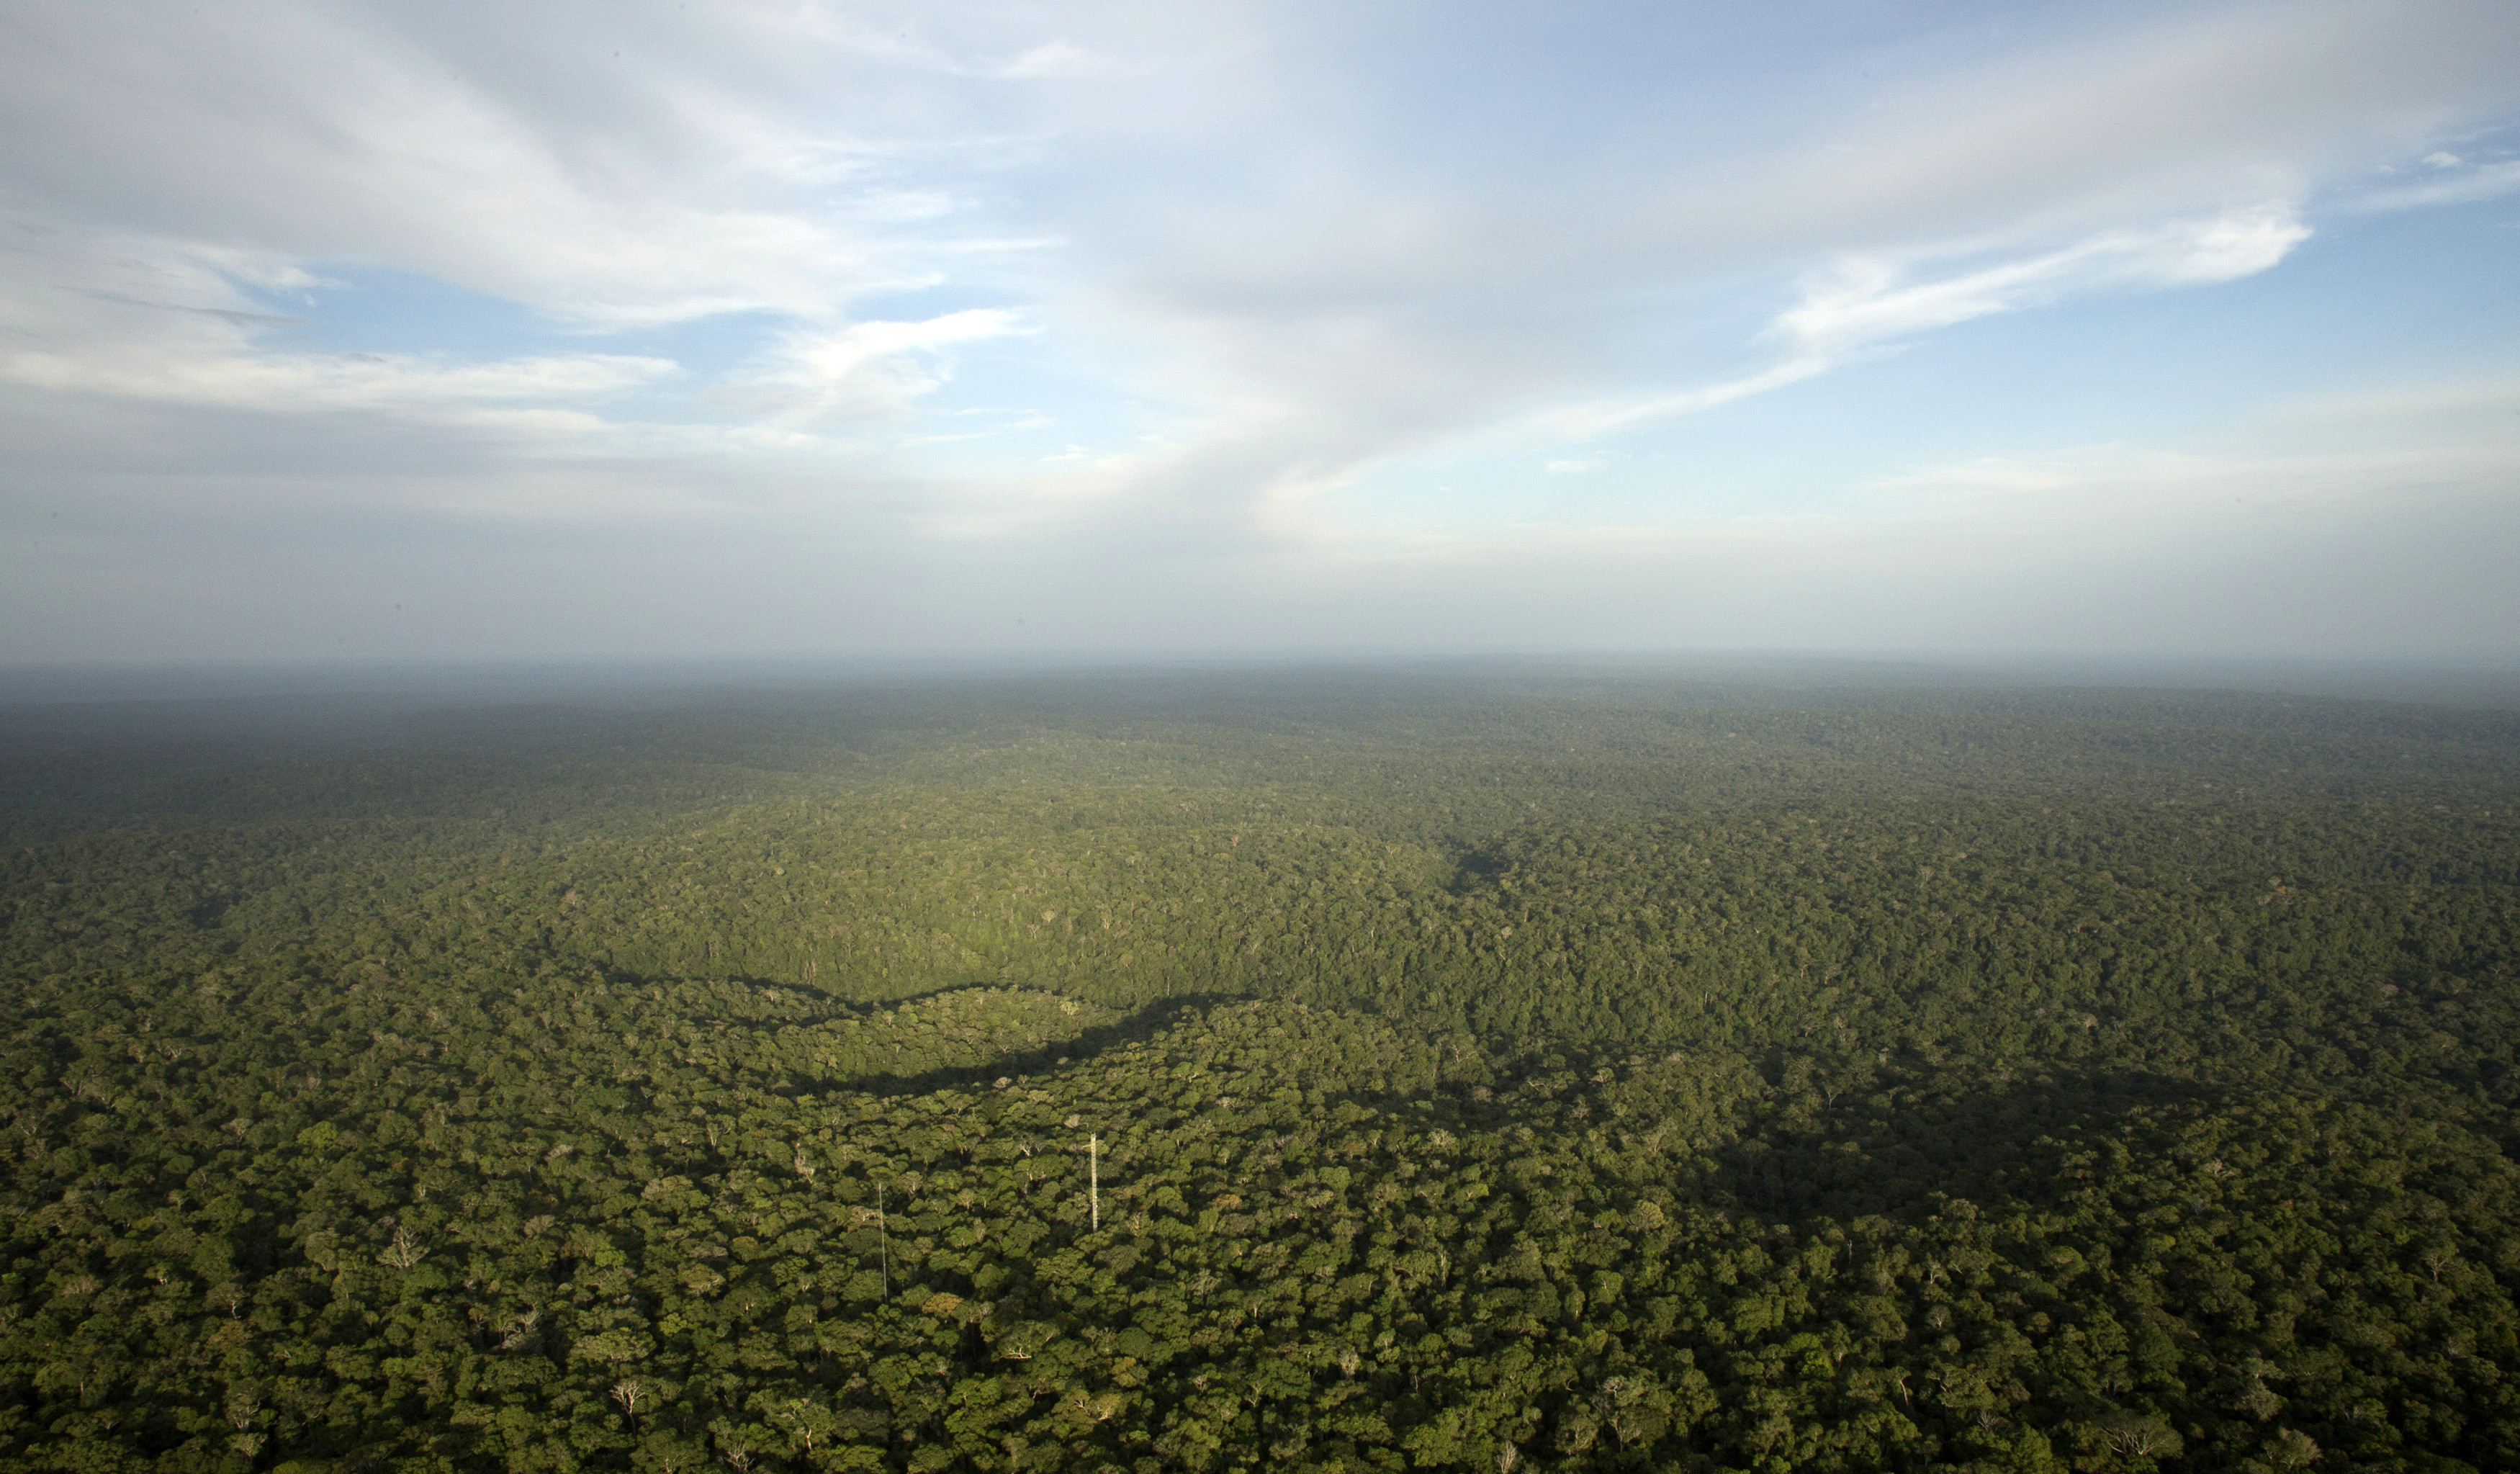 a birds eye view of a large forest